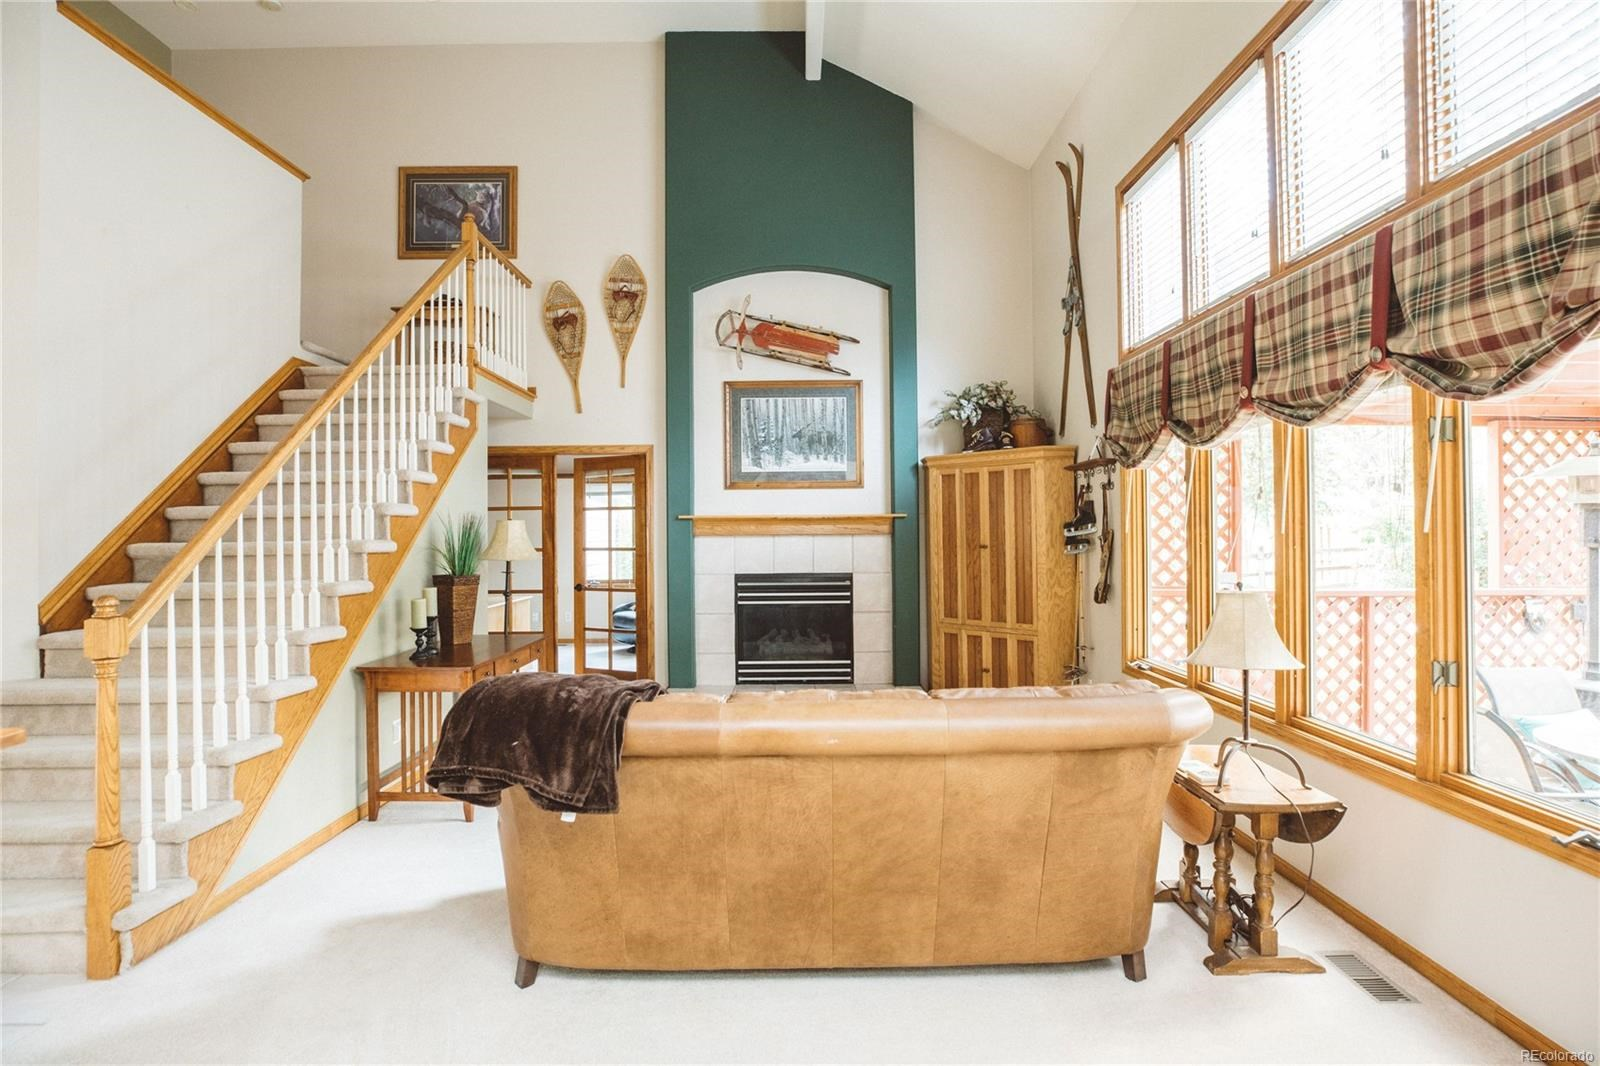 MLS# 4033949 - 7 - 3713 Ashmount Drive, Fort Collins, CO 80525